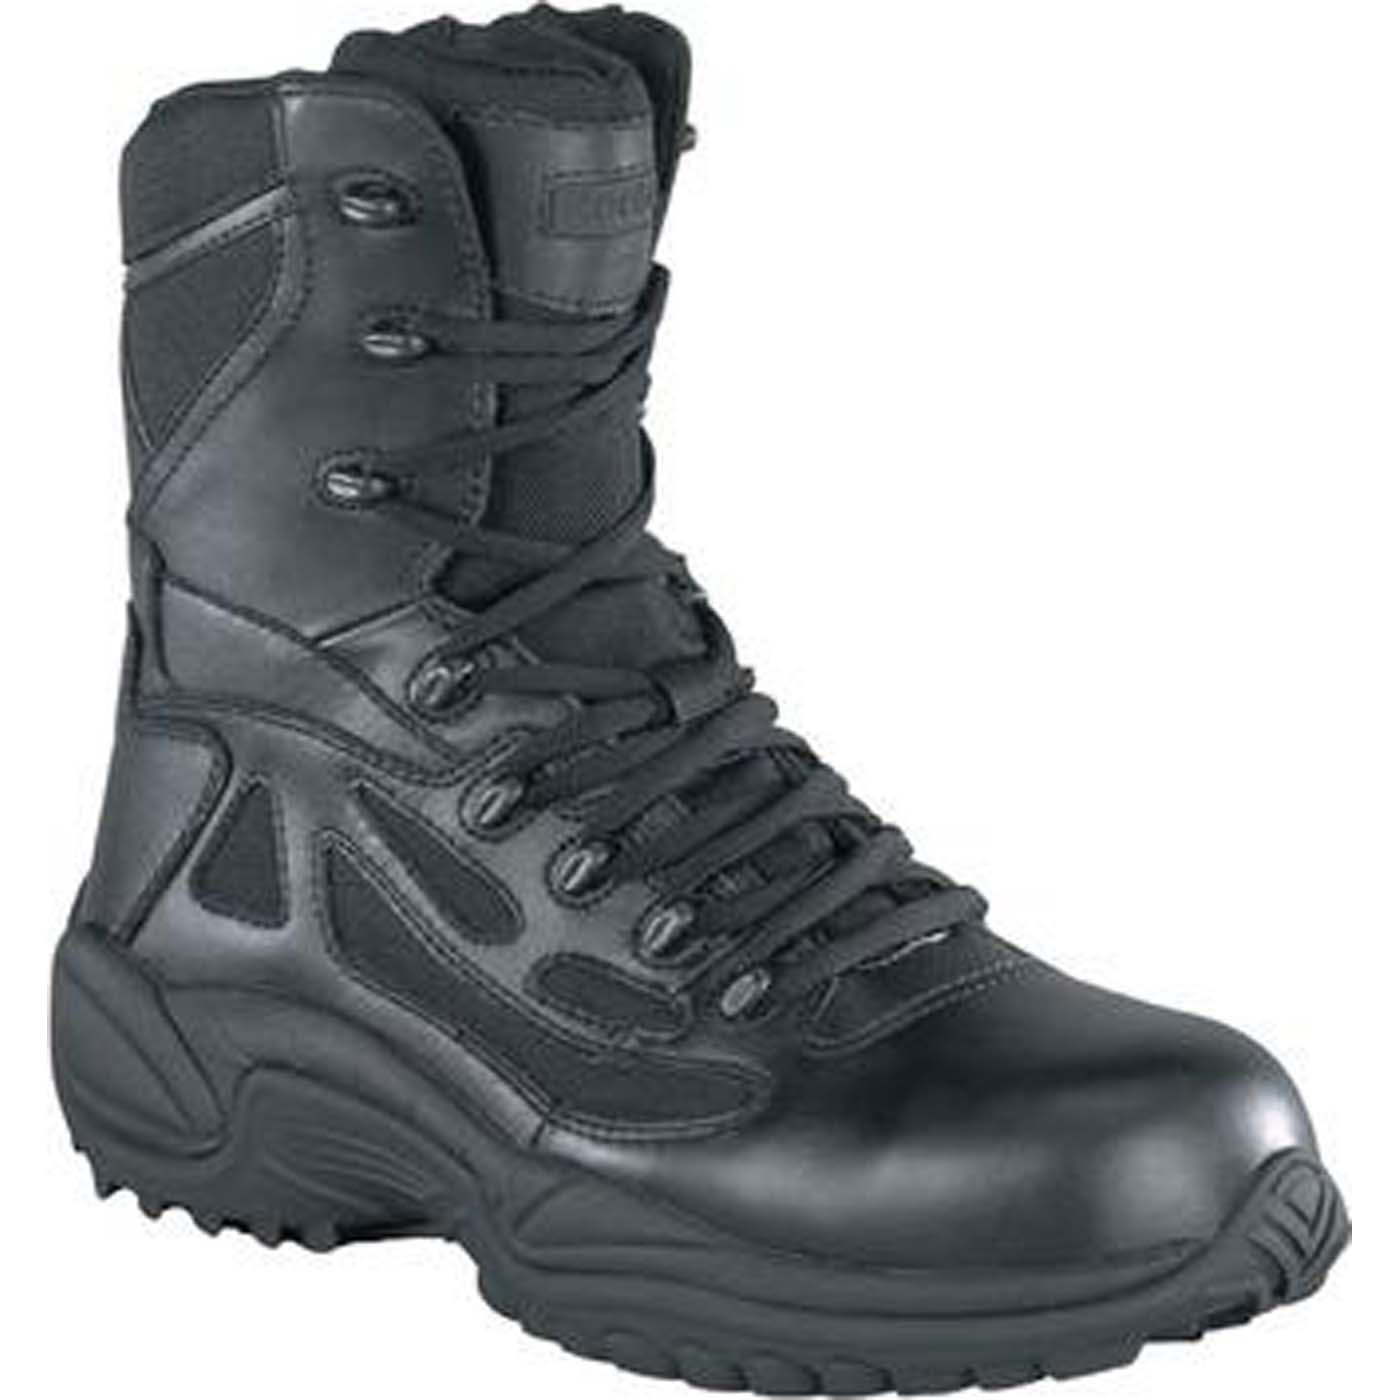 Reebok Women S Composite Toe Duty Boots Rb874